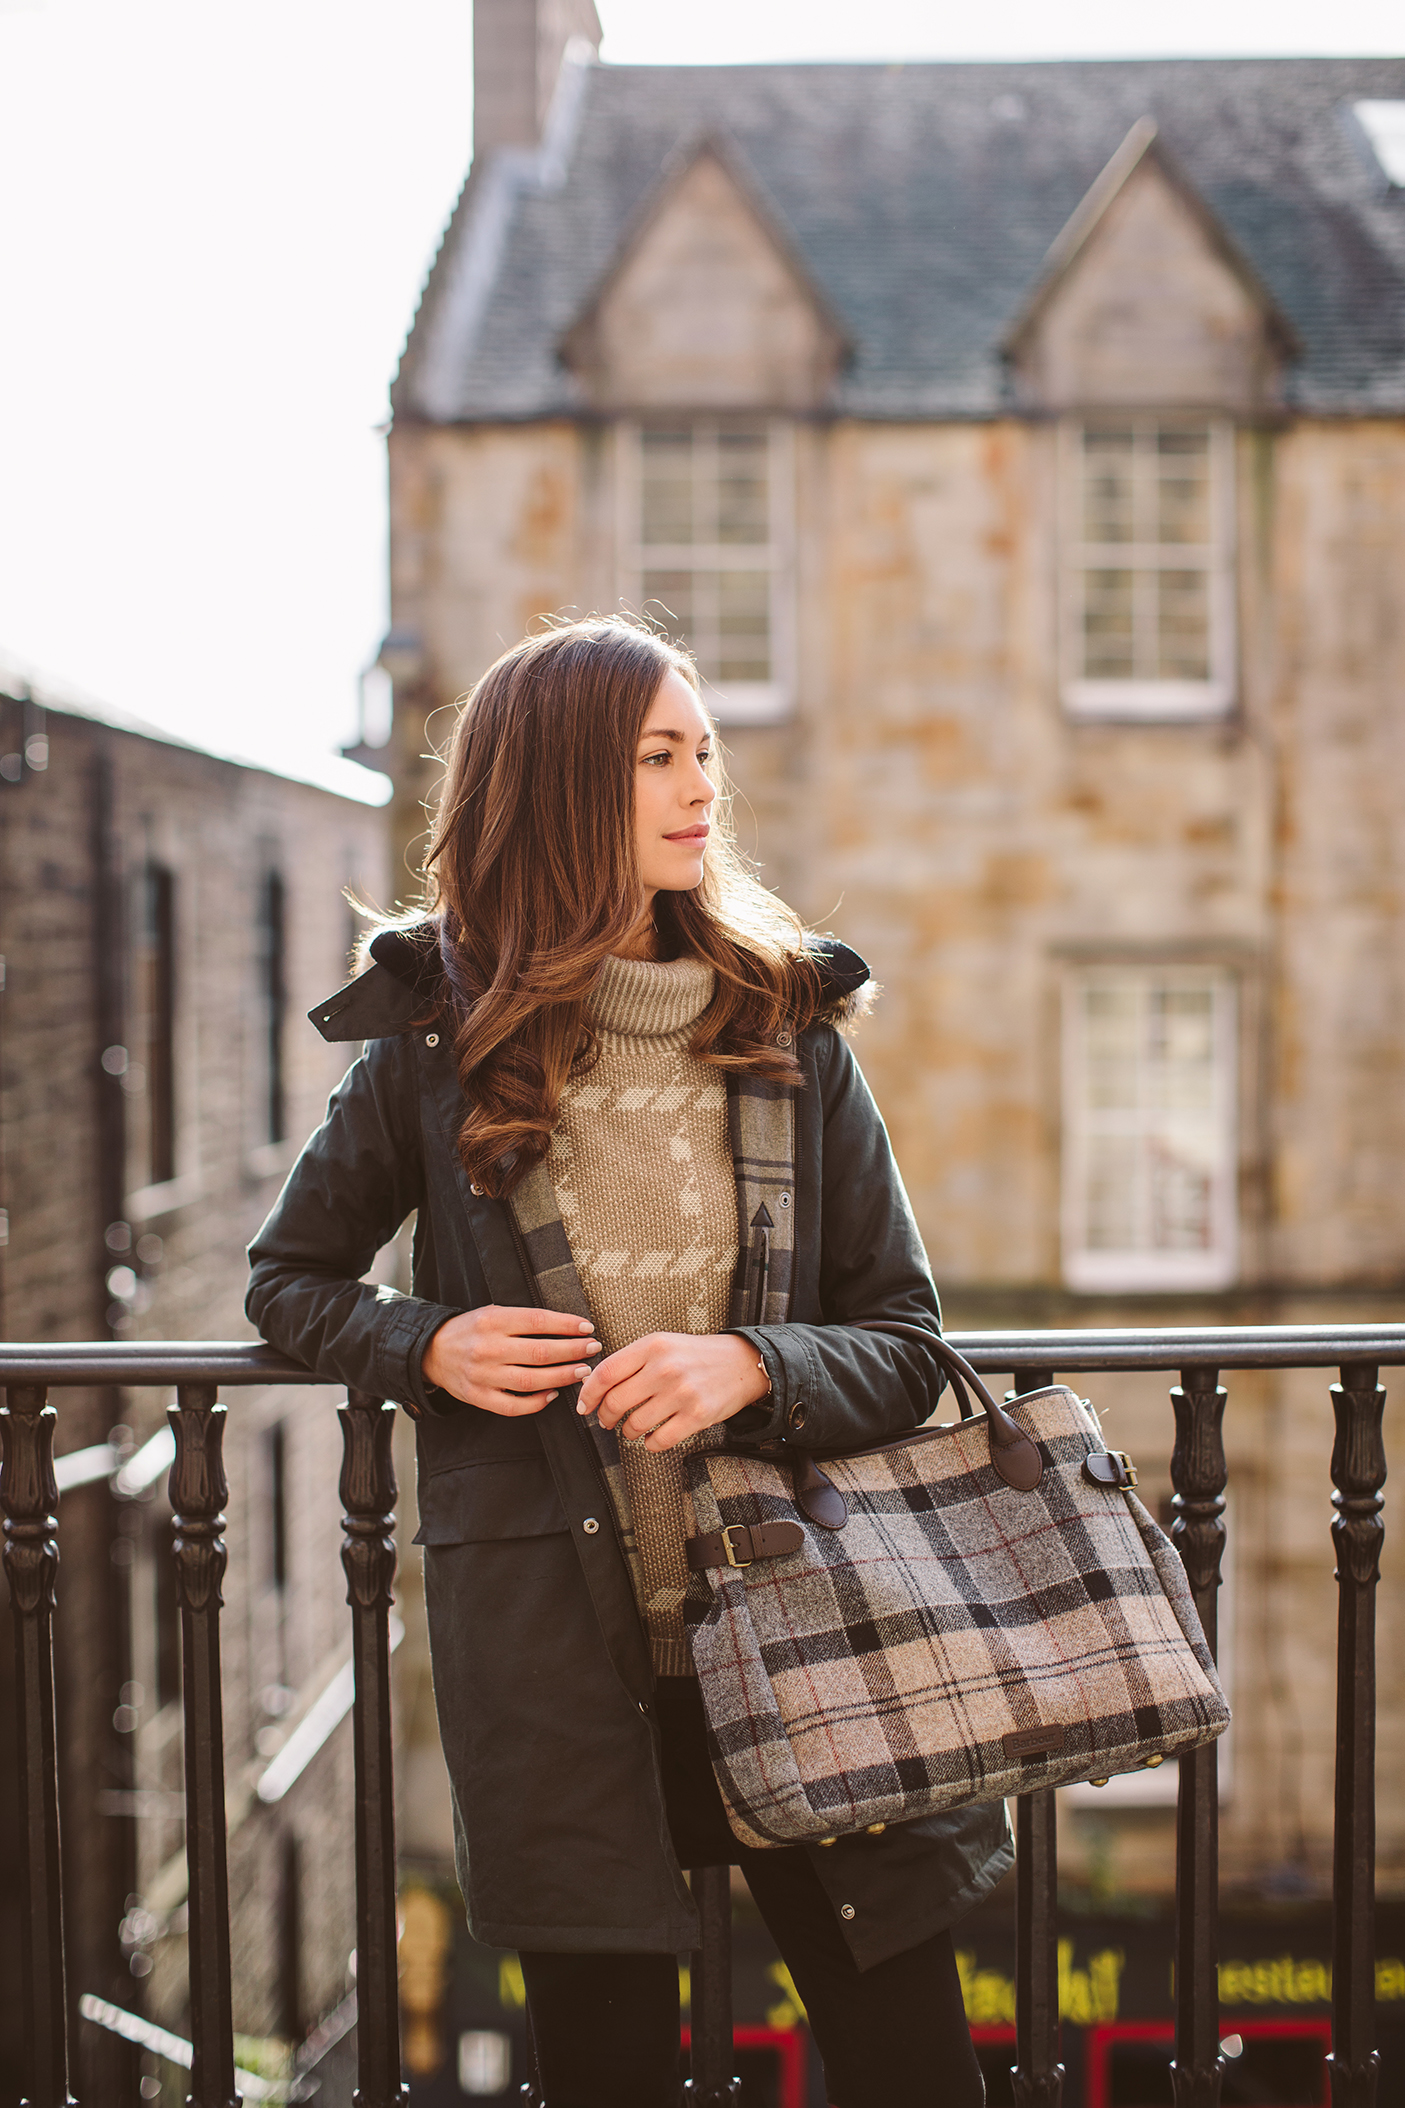 Barbour Lifestyle Classic Tartan Barbour Fortrose Wax Jacket LWX0749SG51, Barbour Tartan Business Bag LBA0257TN75_RGB_low res (4).jpg